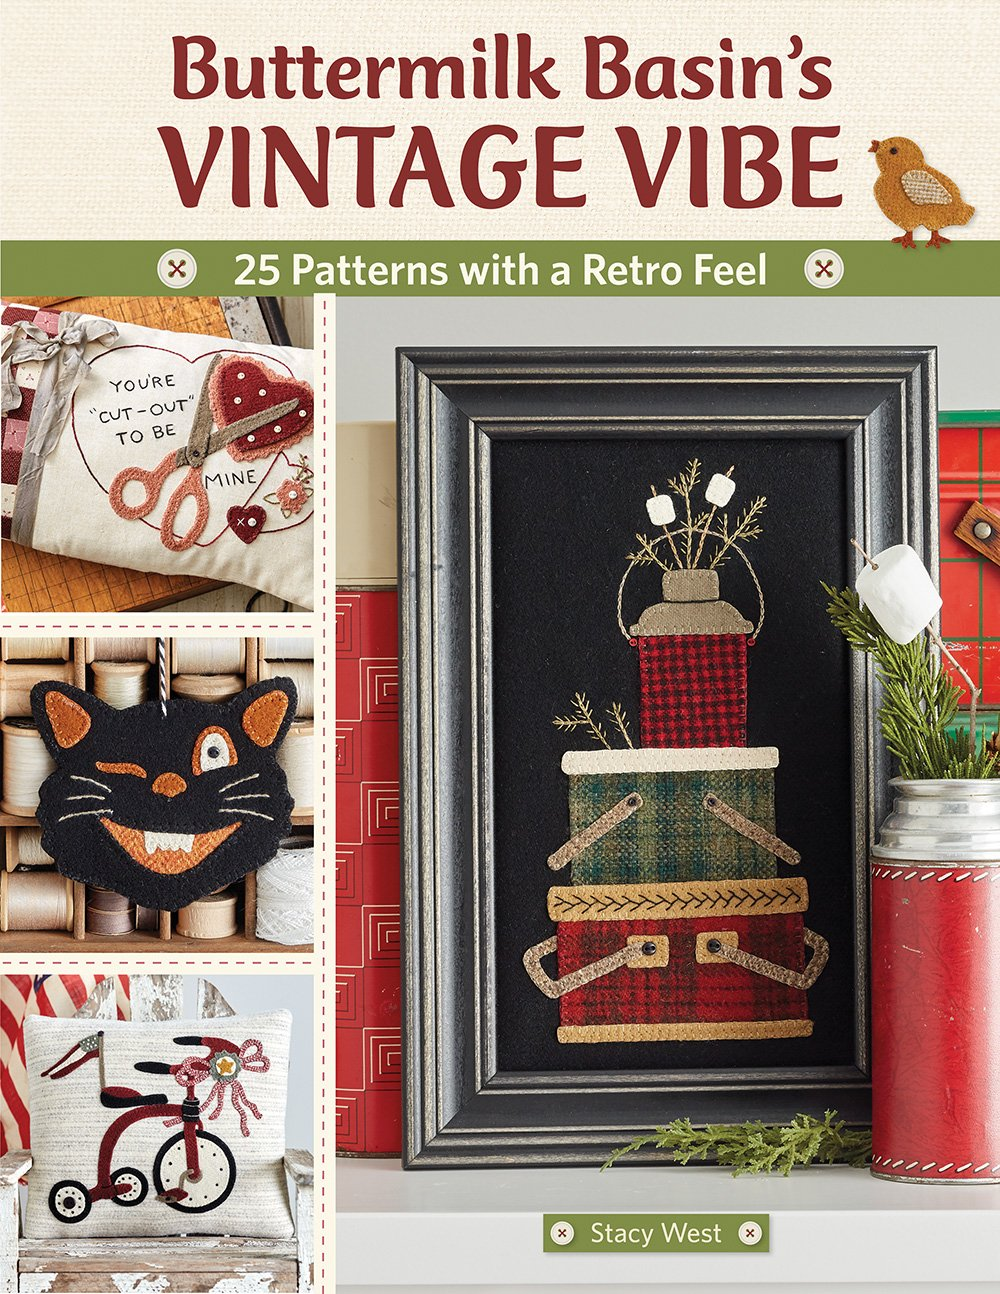 Vintage Vibe by Stacy West